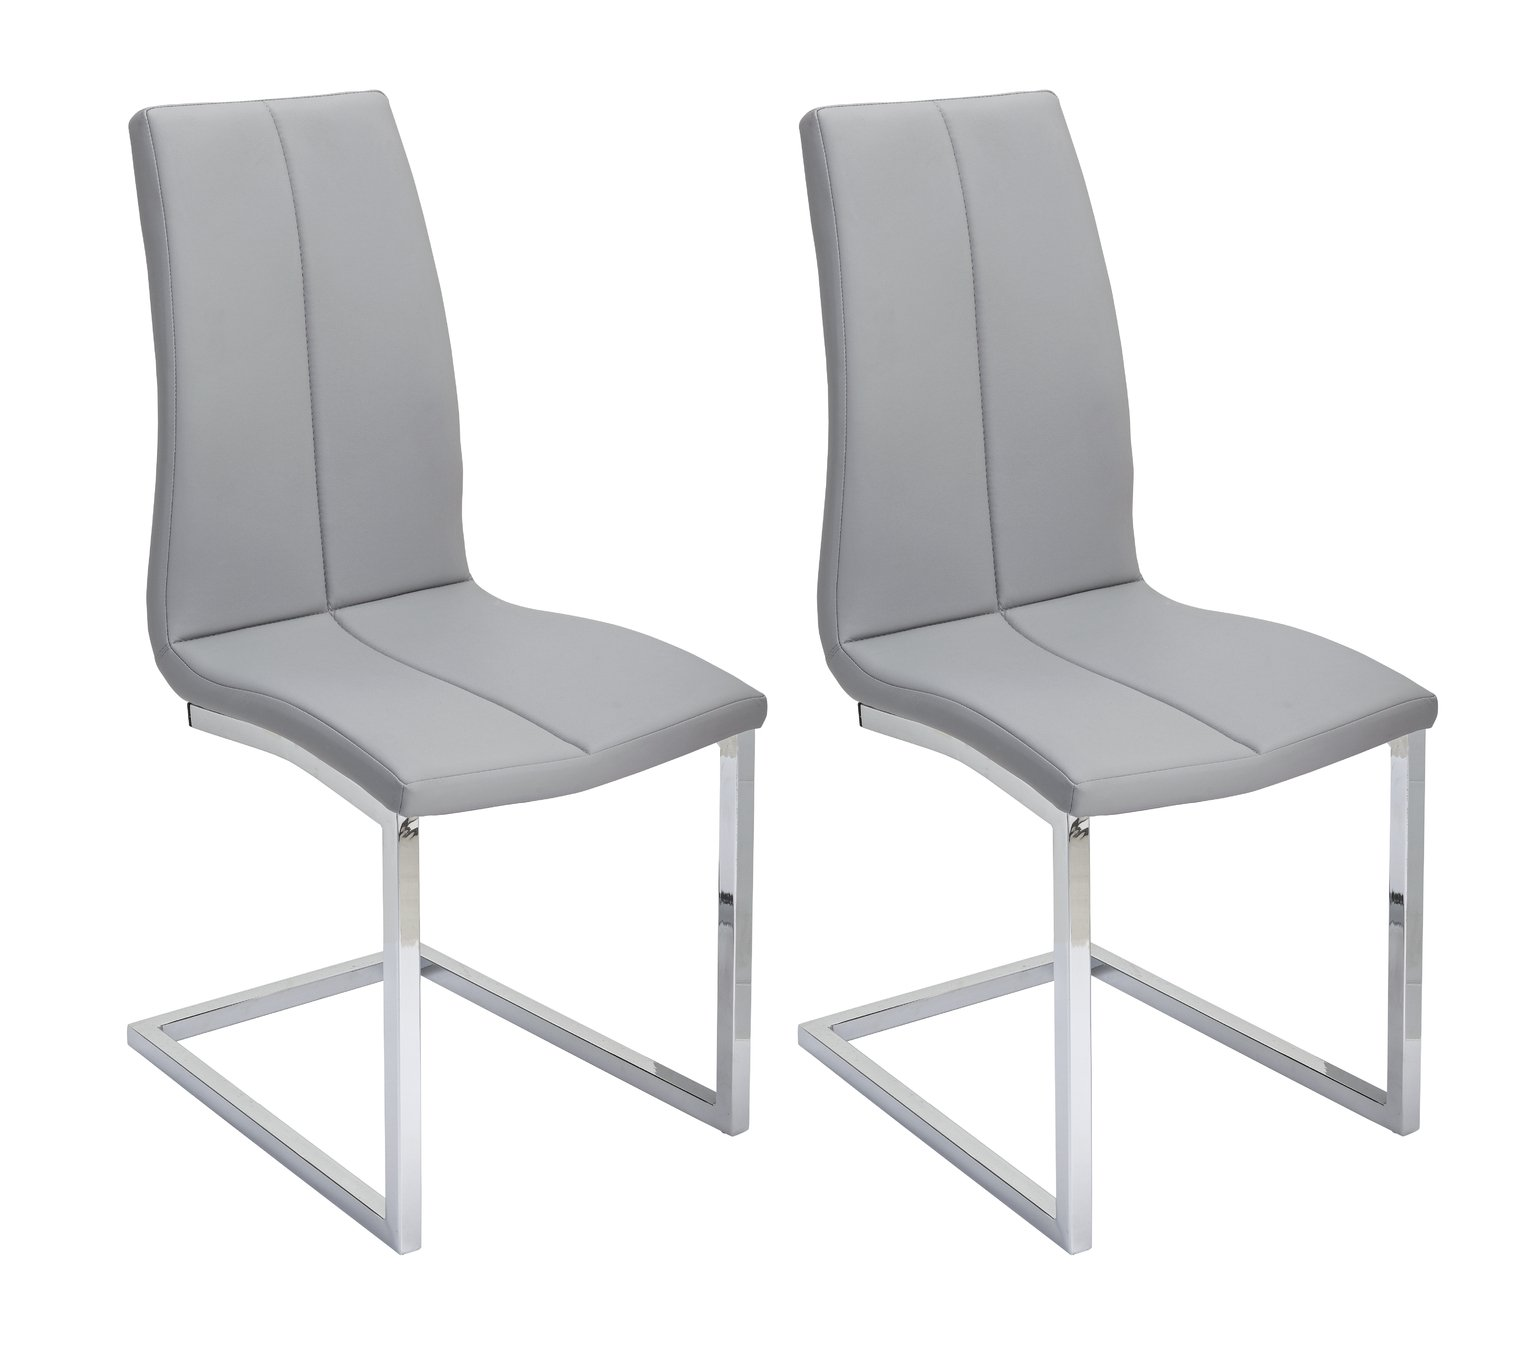 Argos Home Milo Pair of Faux Leather Dining Chairs - Grey